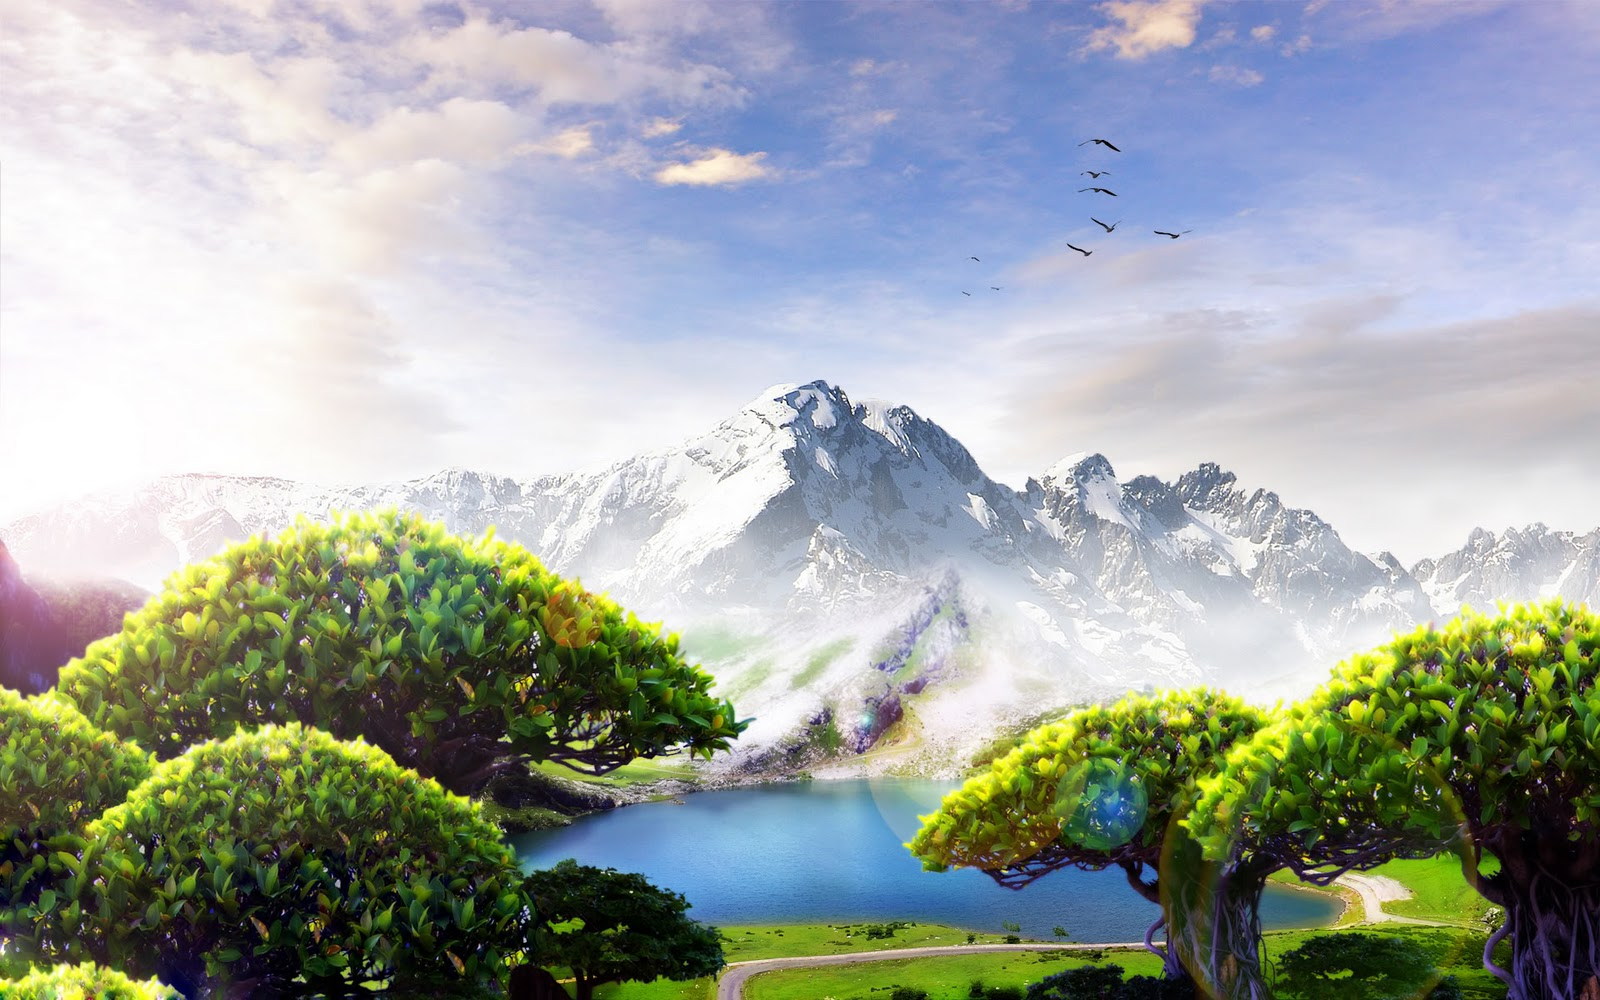 Wallpapers hd free scenery forest etc - Fantasy wallpaper anime ...